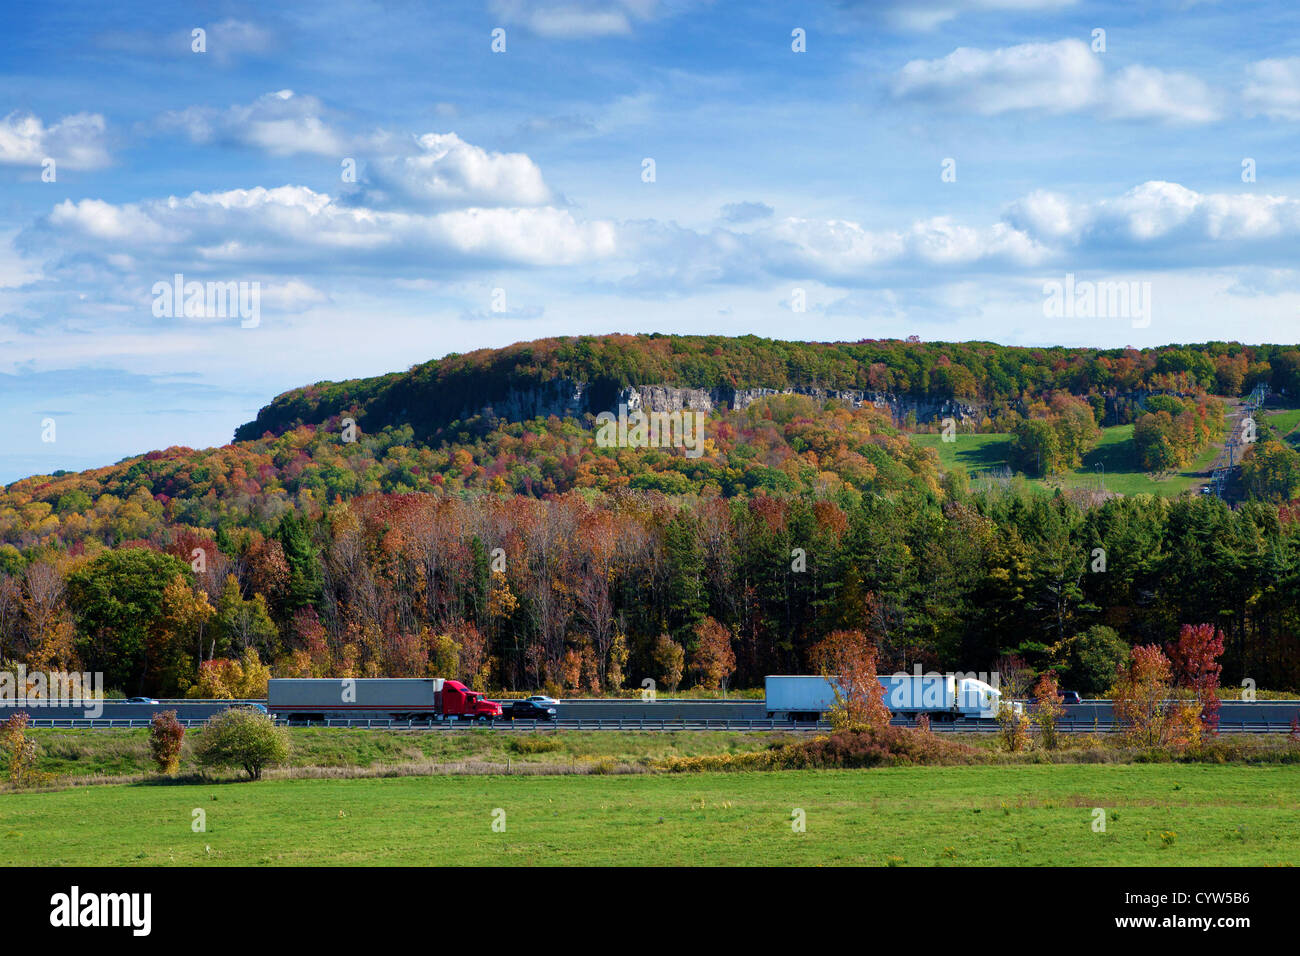 Highway 401 with Rattlesnake Point in Niagara escarpment in the background, Ontario, Canada - Stock Image